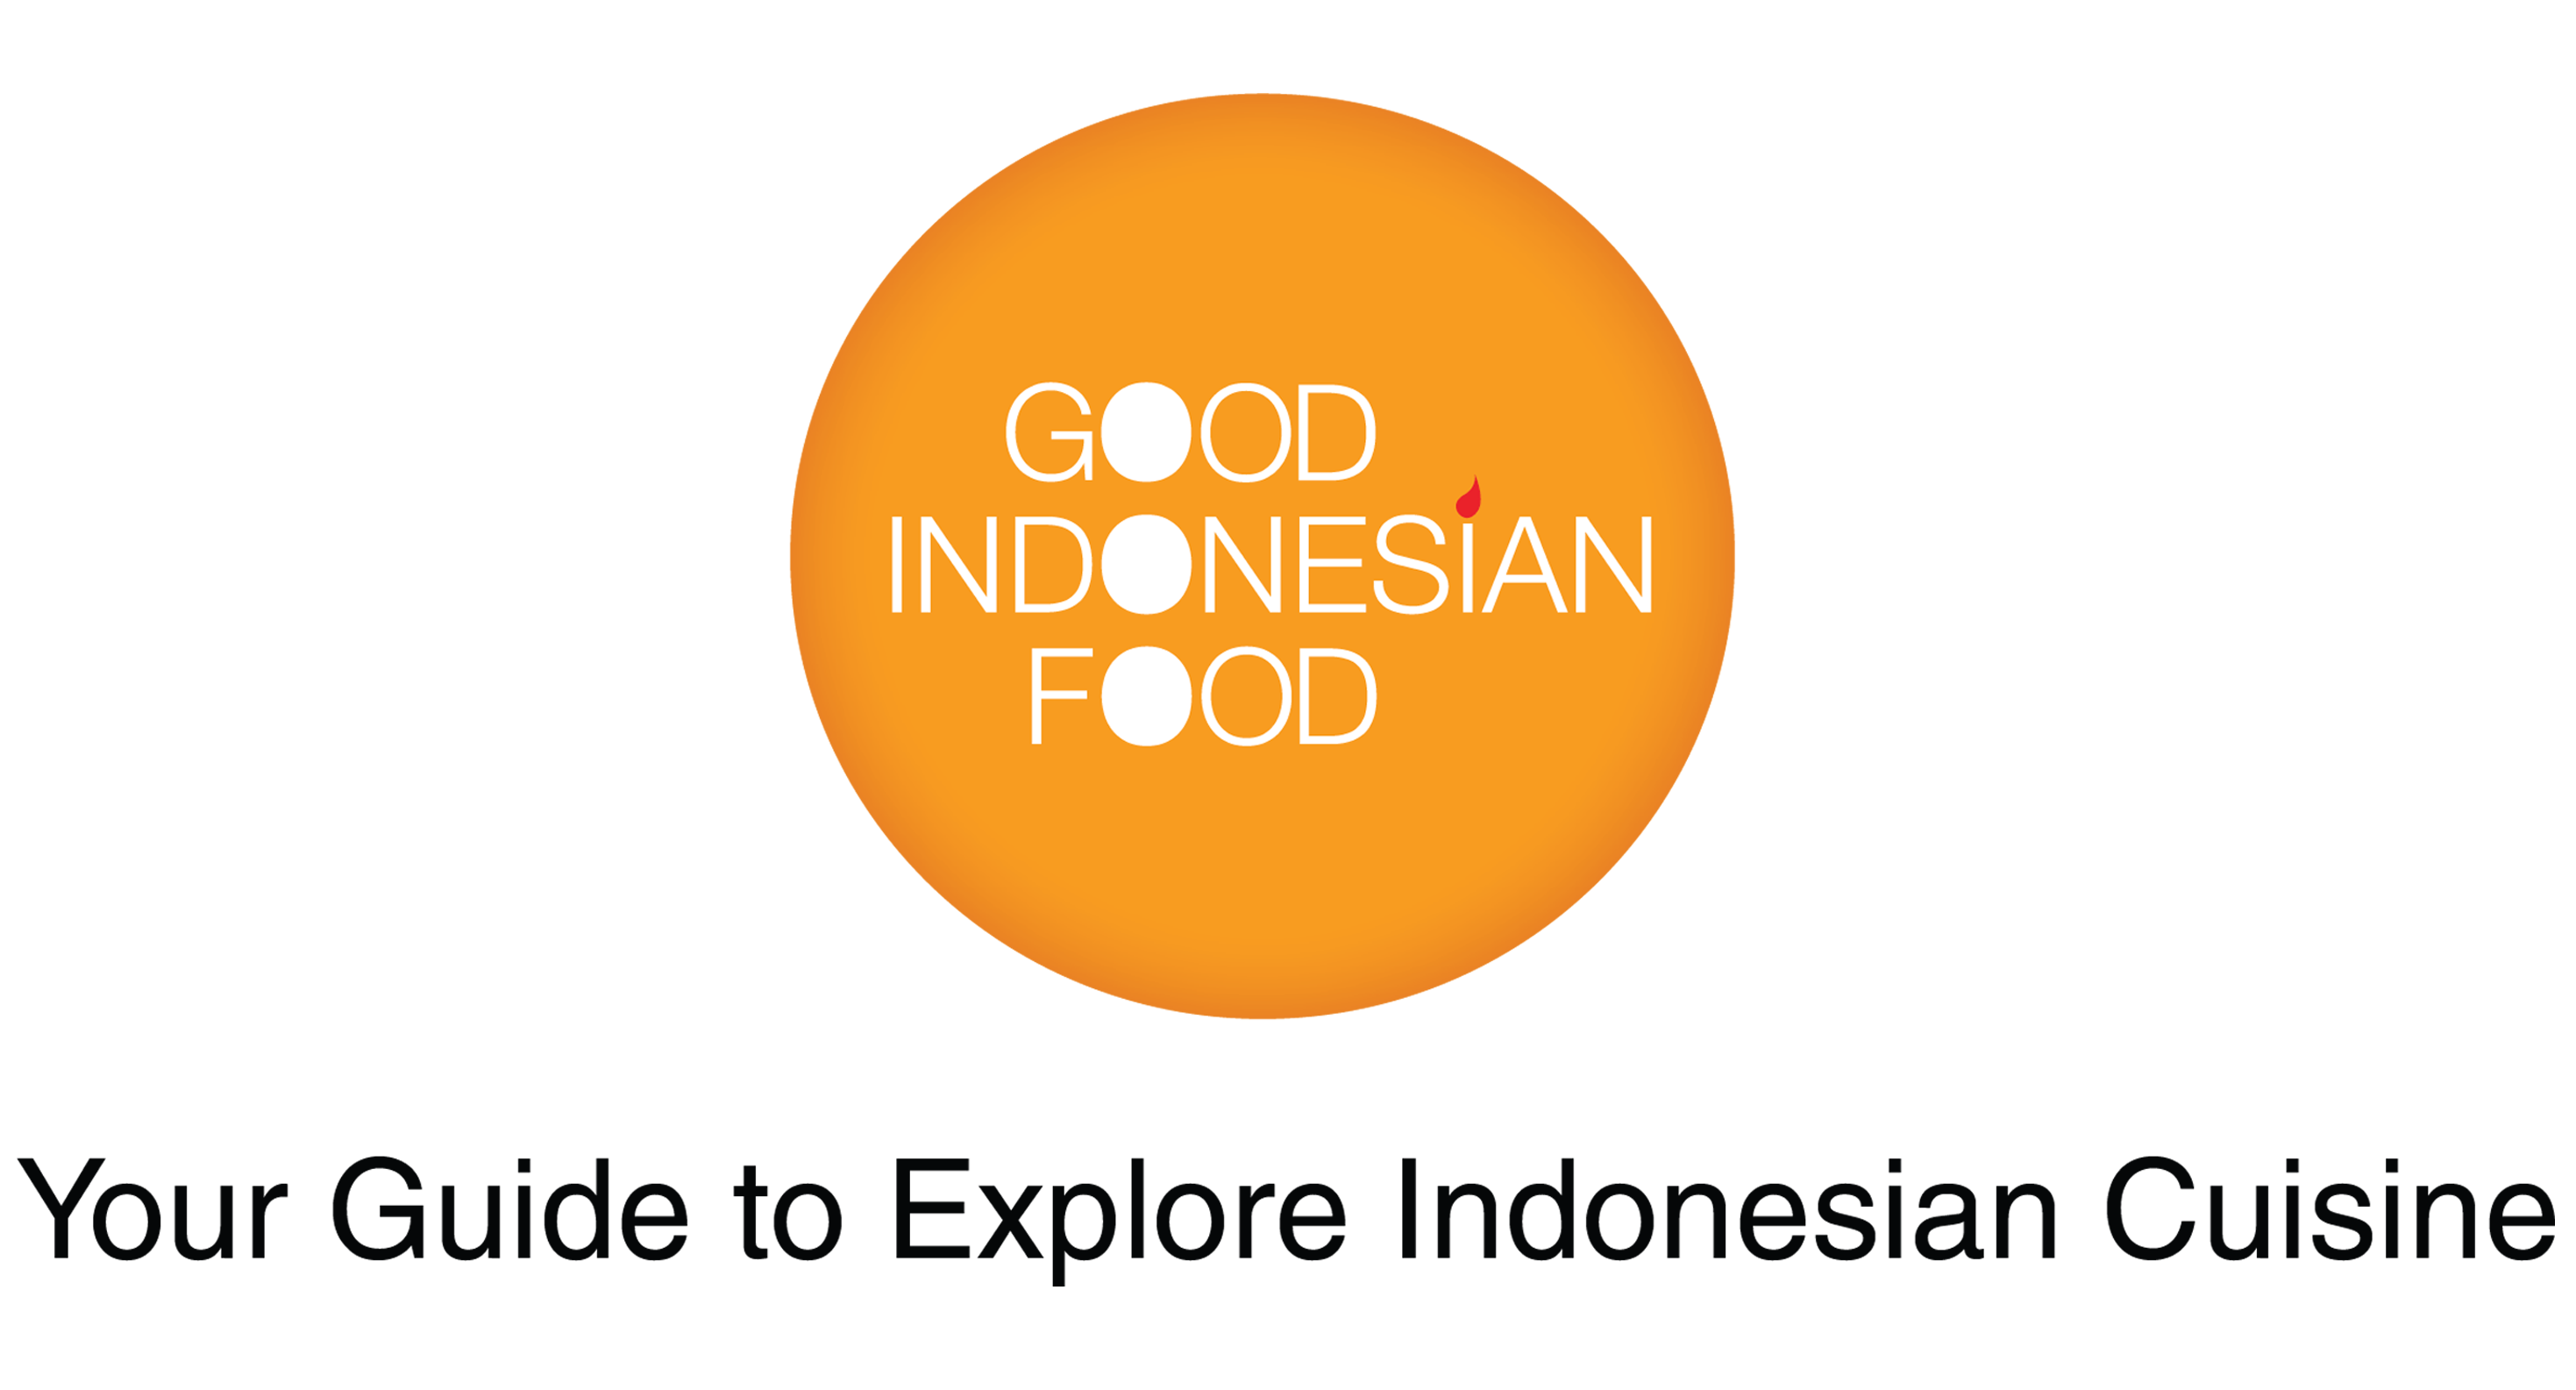 GOOD INDONESIAN FOOD